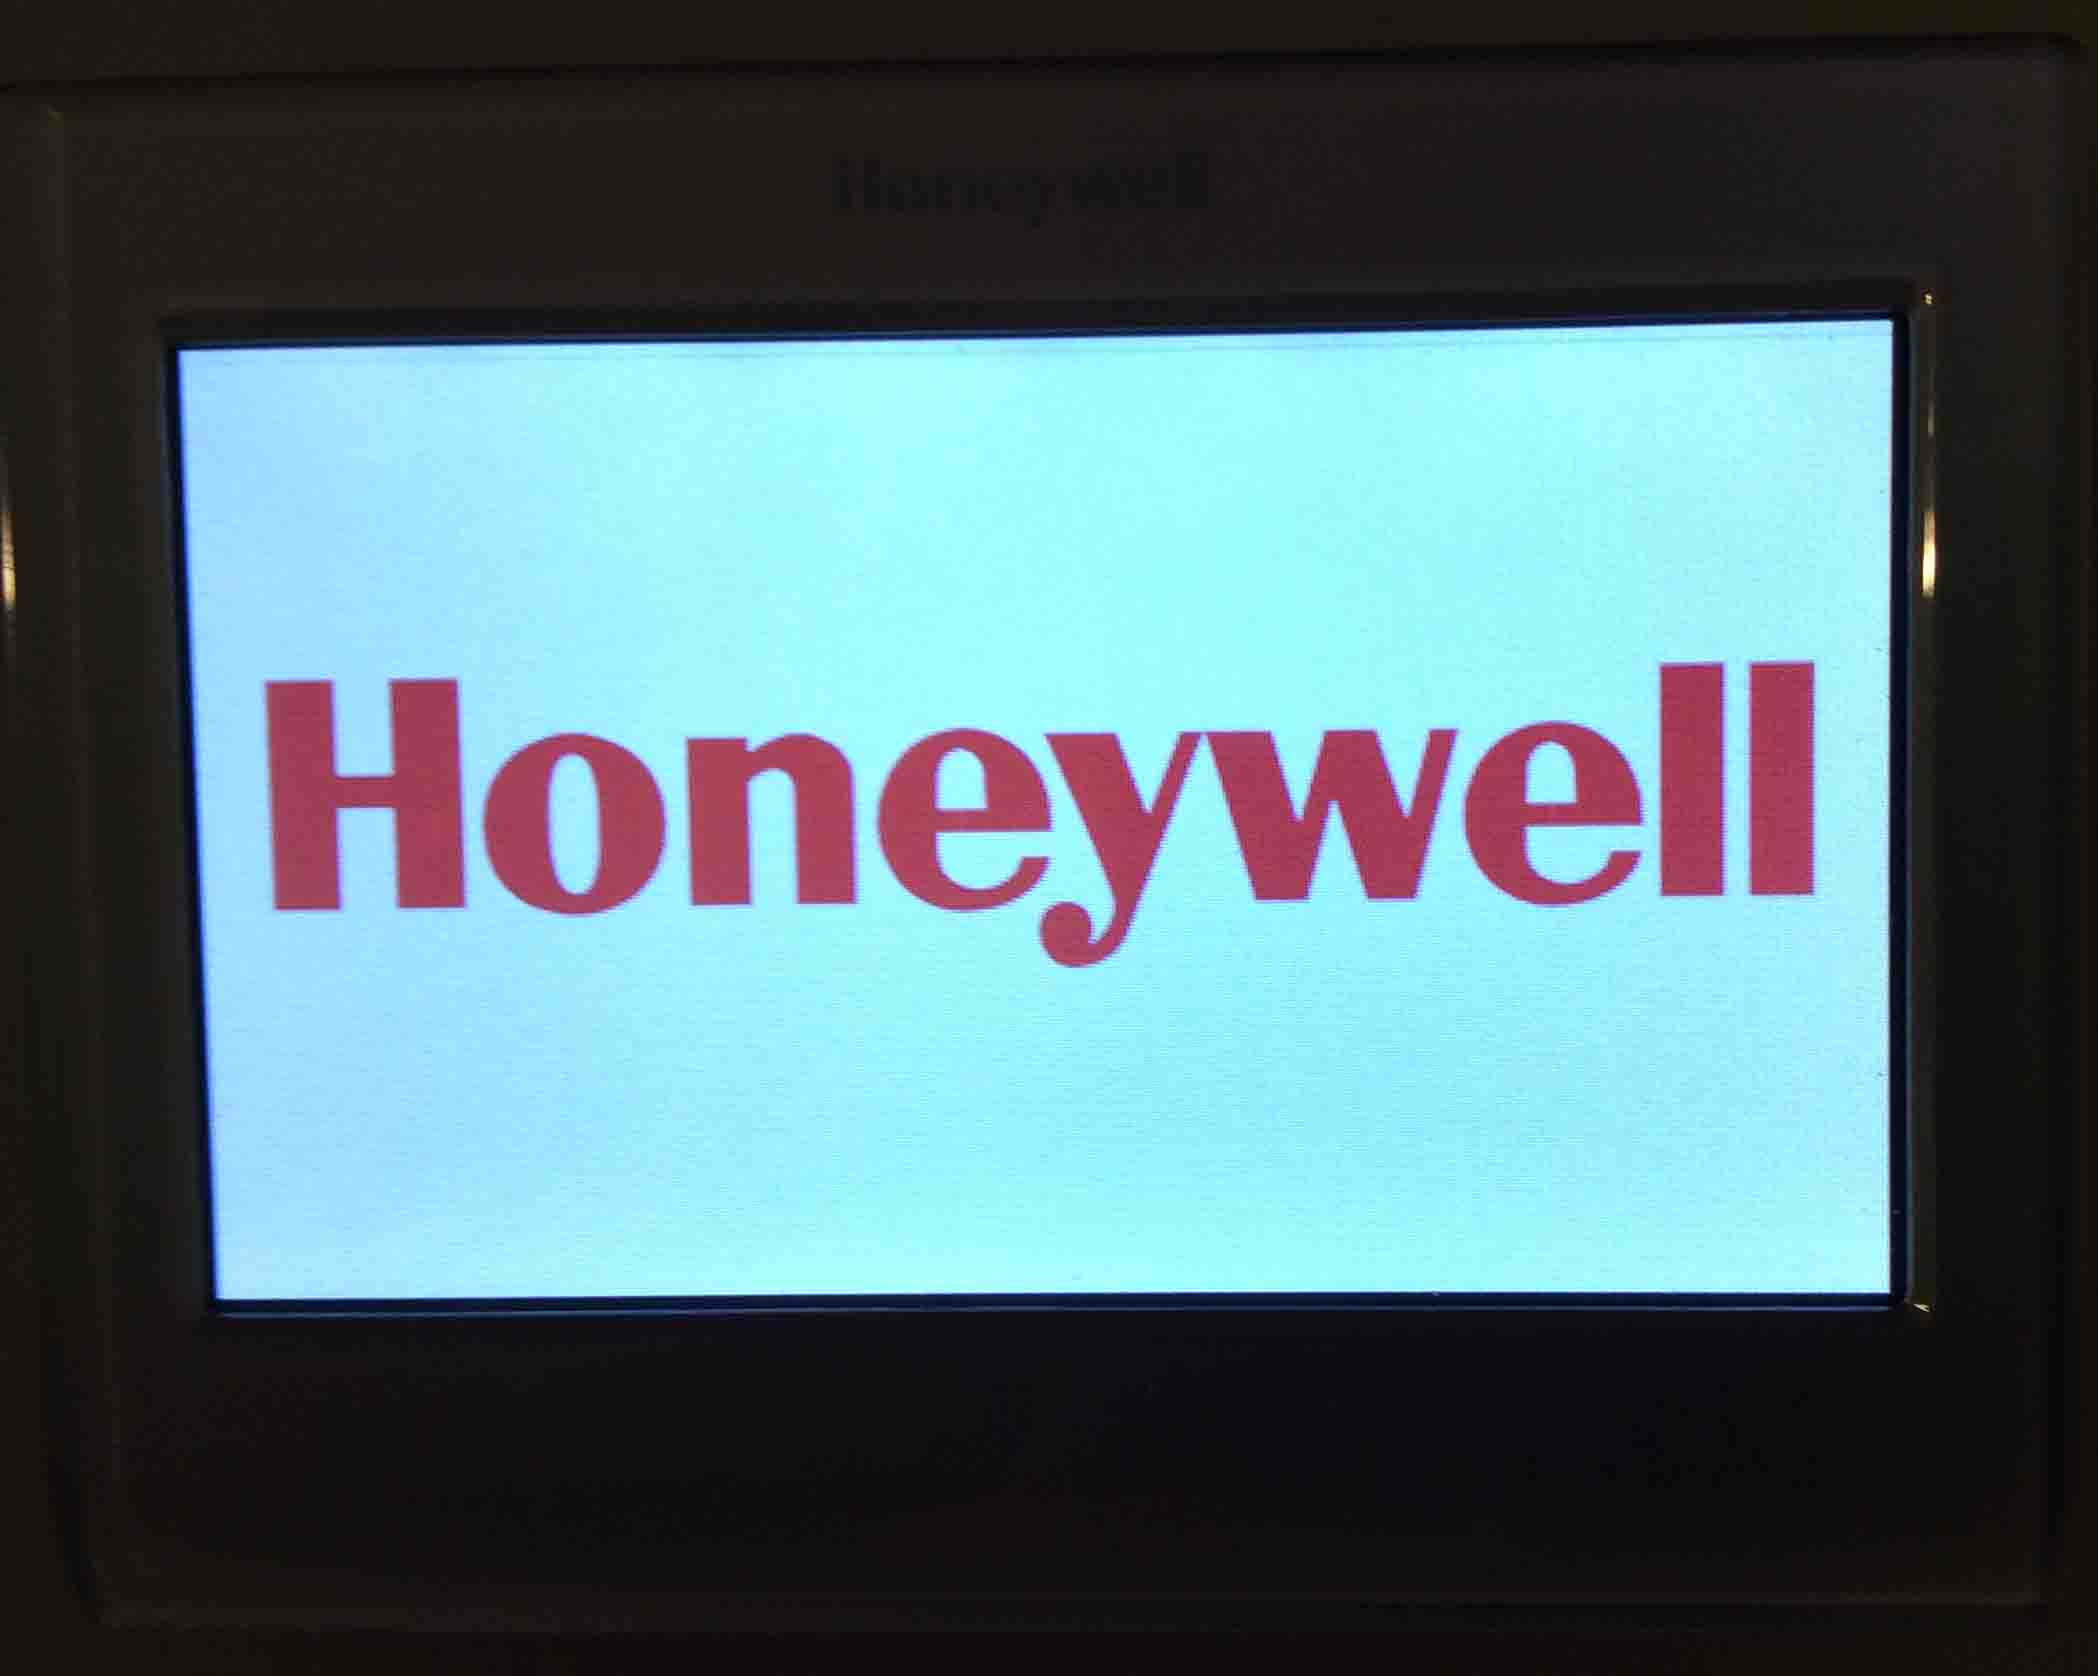 Thermostat Wiring Diagram On Honeywell Thermostat Wiring Diagram 9580